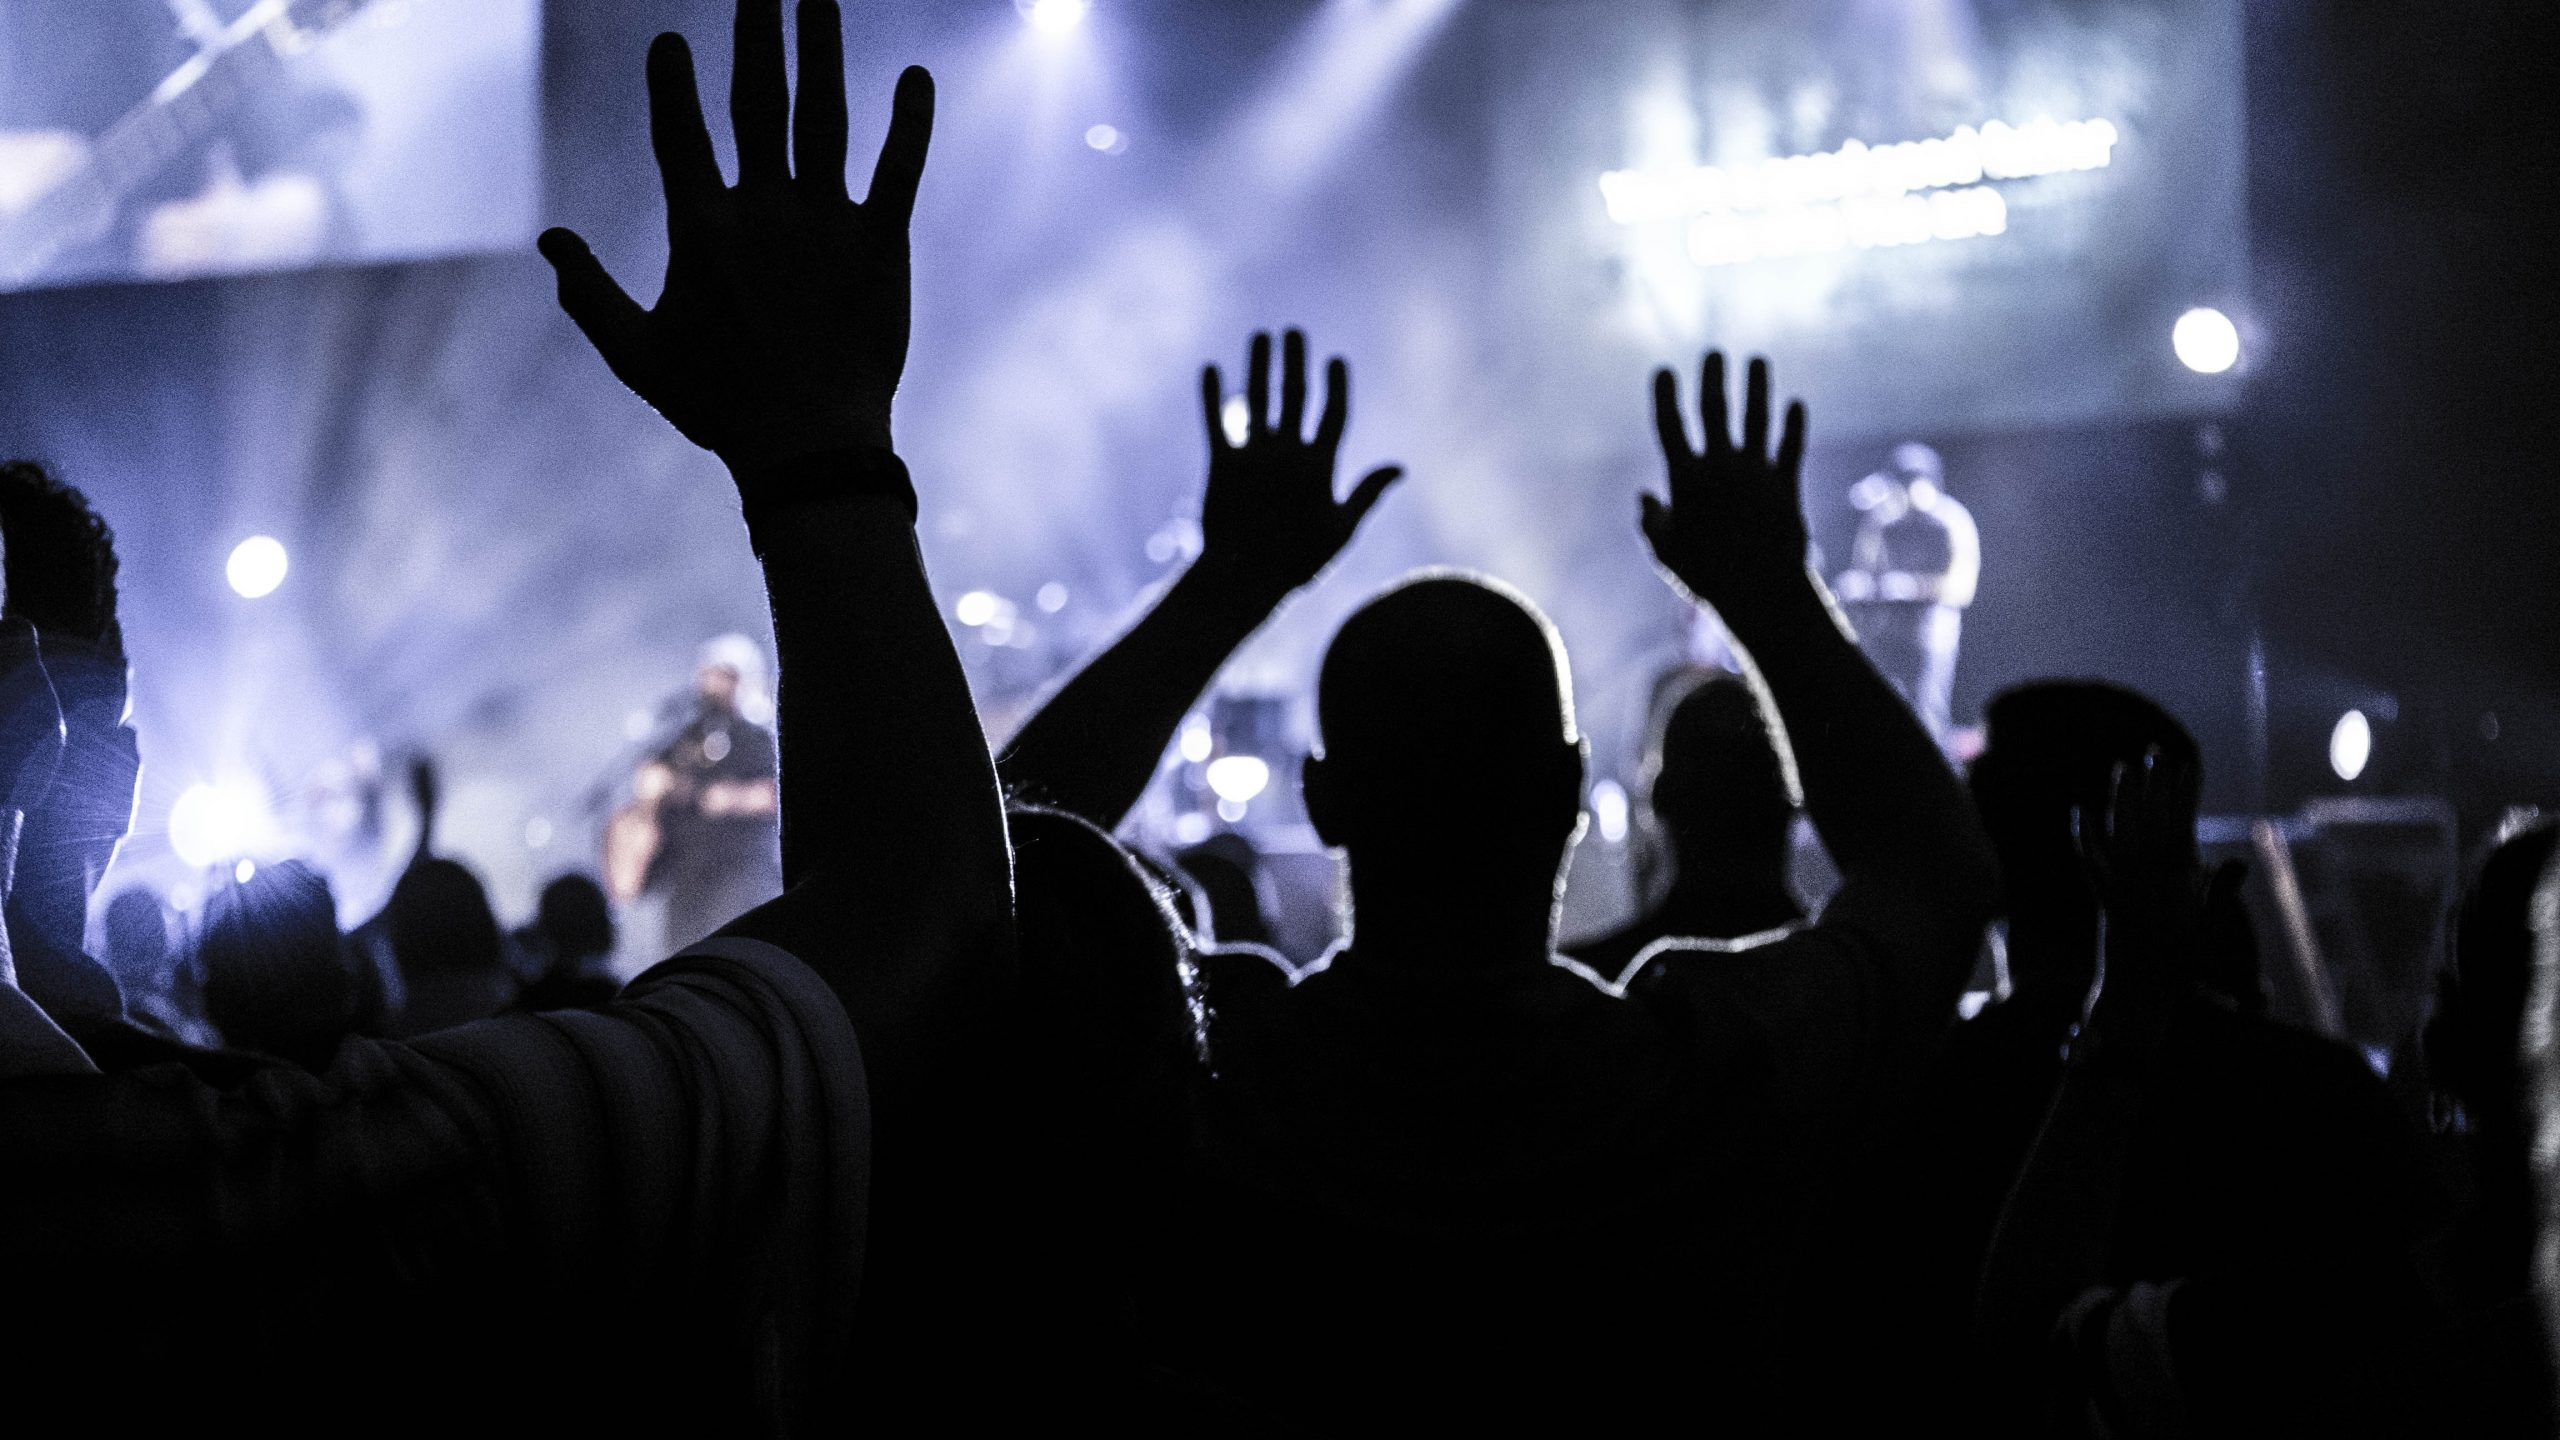 live music crowd hands 2021